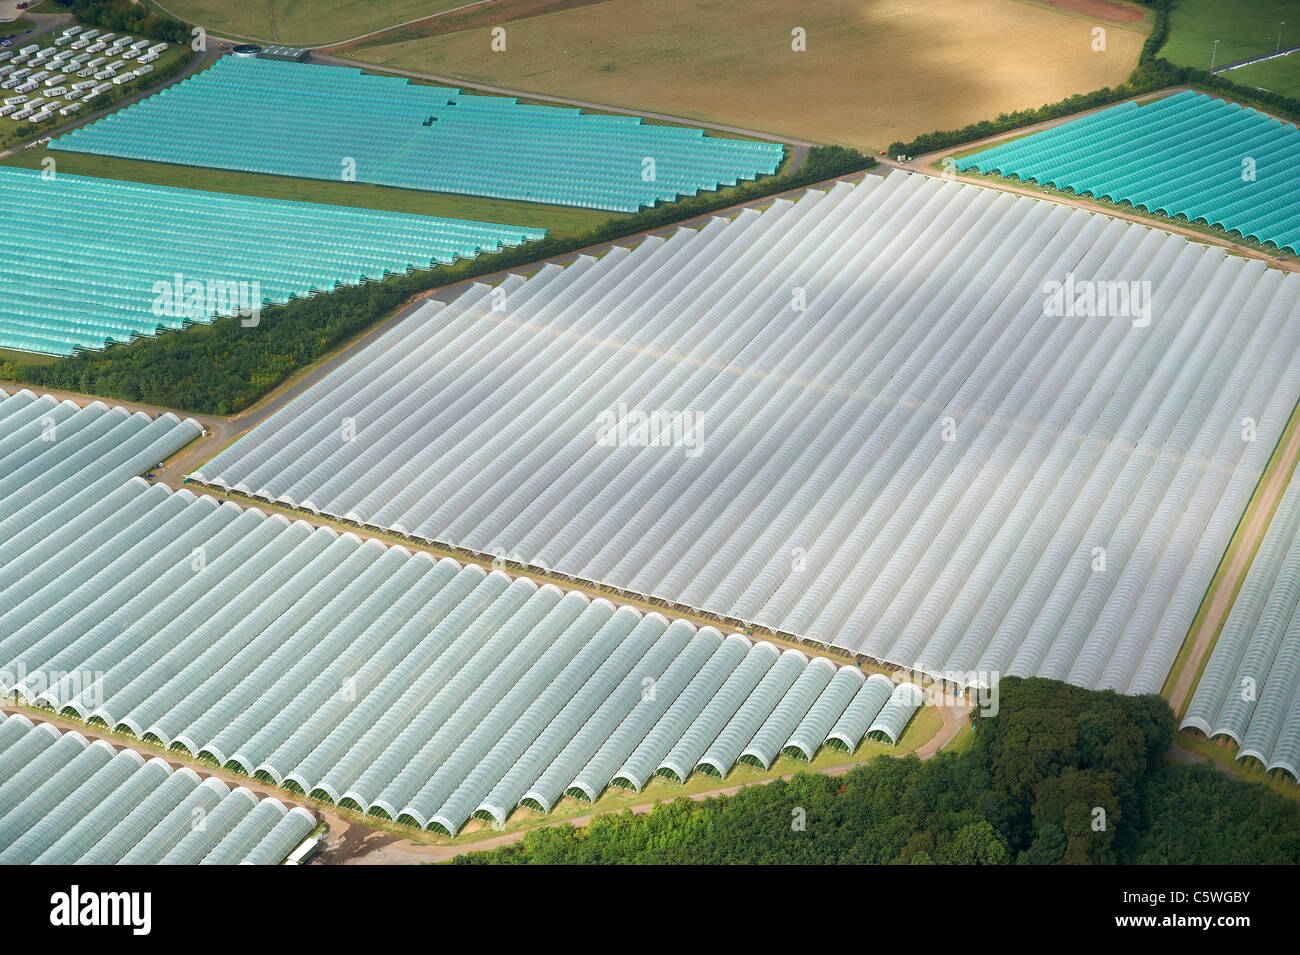 Poly Tunnels - growing crops under plastic, Leeds Northern England Stock Photo